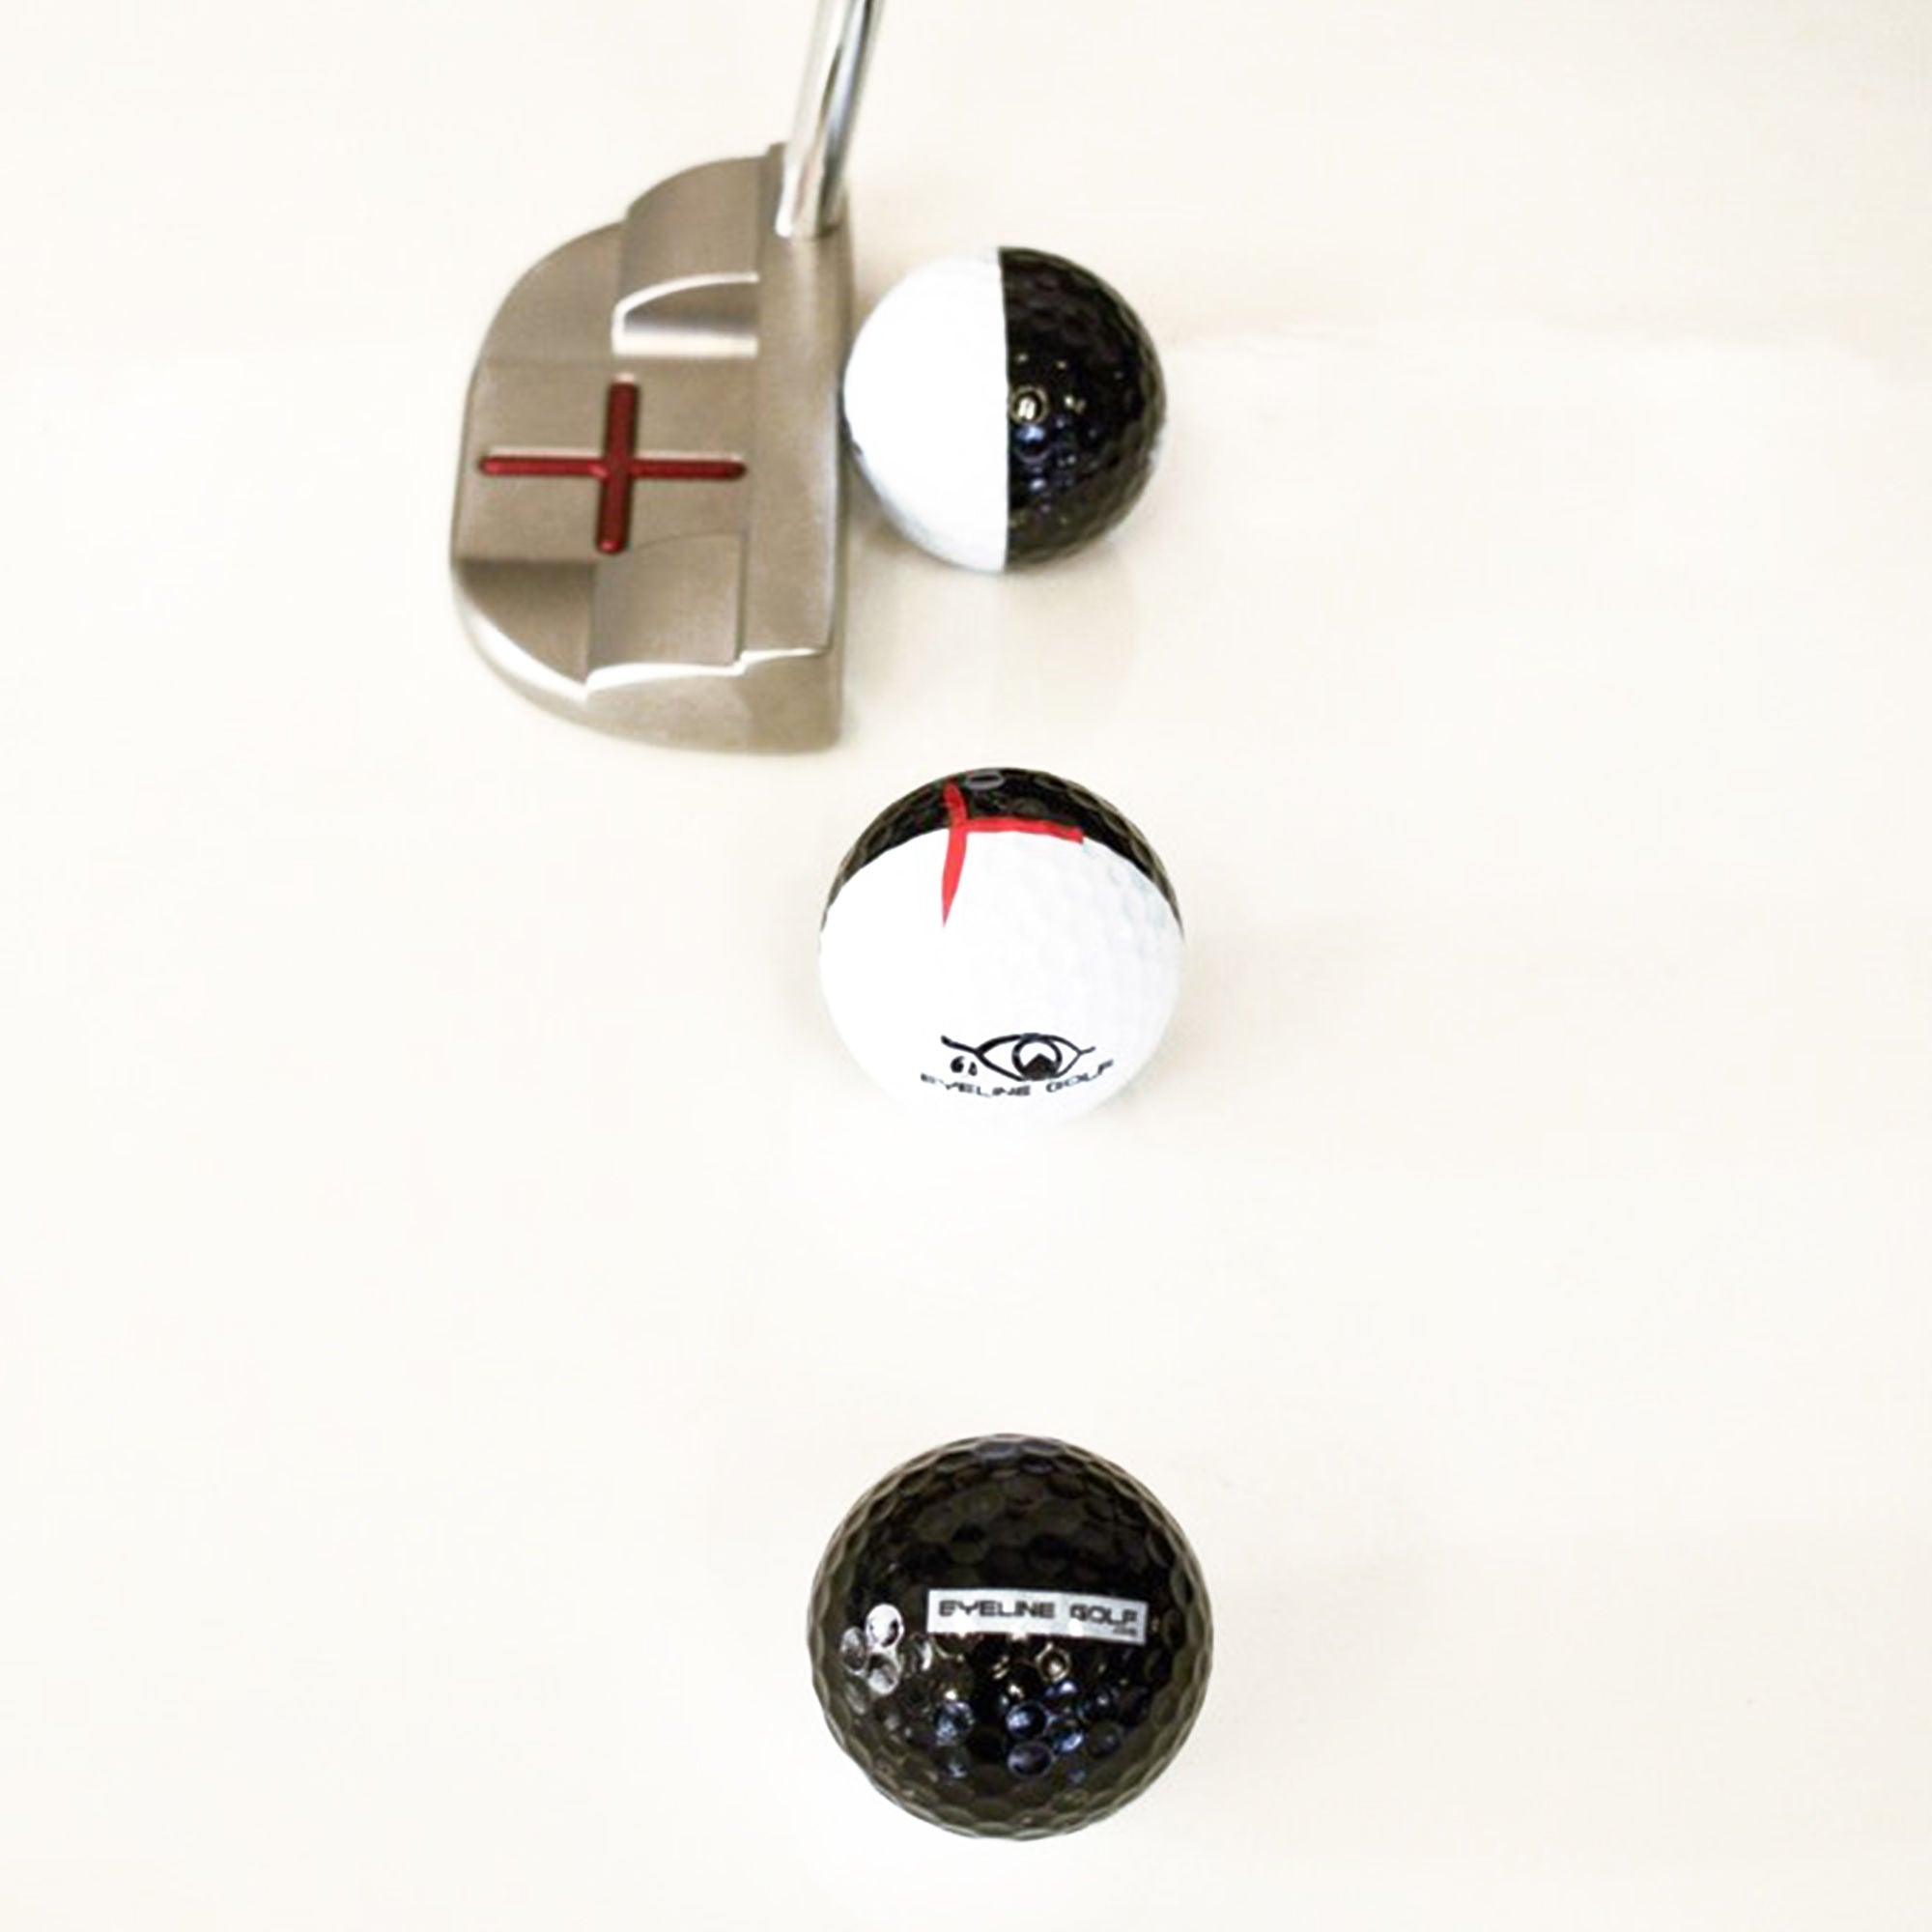 EyeLine 3-Pack MyRoll Training Balls 2 Colour 50/50 - Putterfingers.com